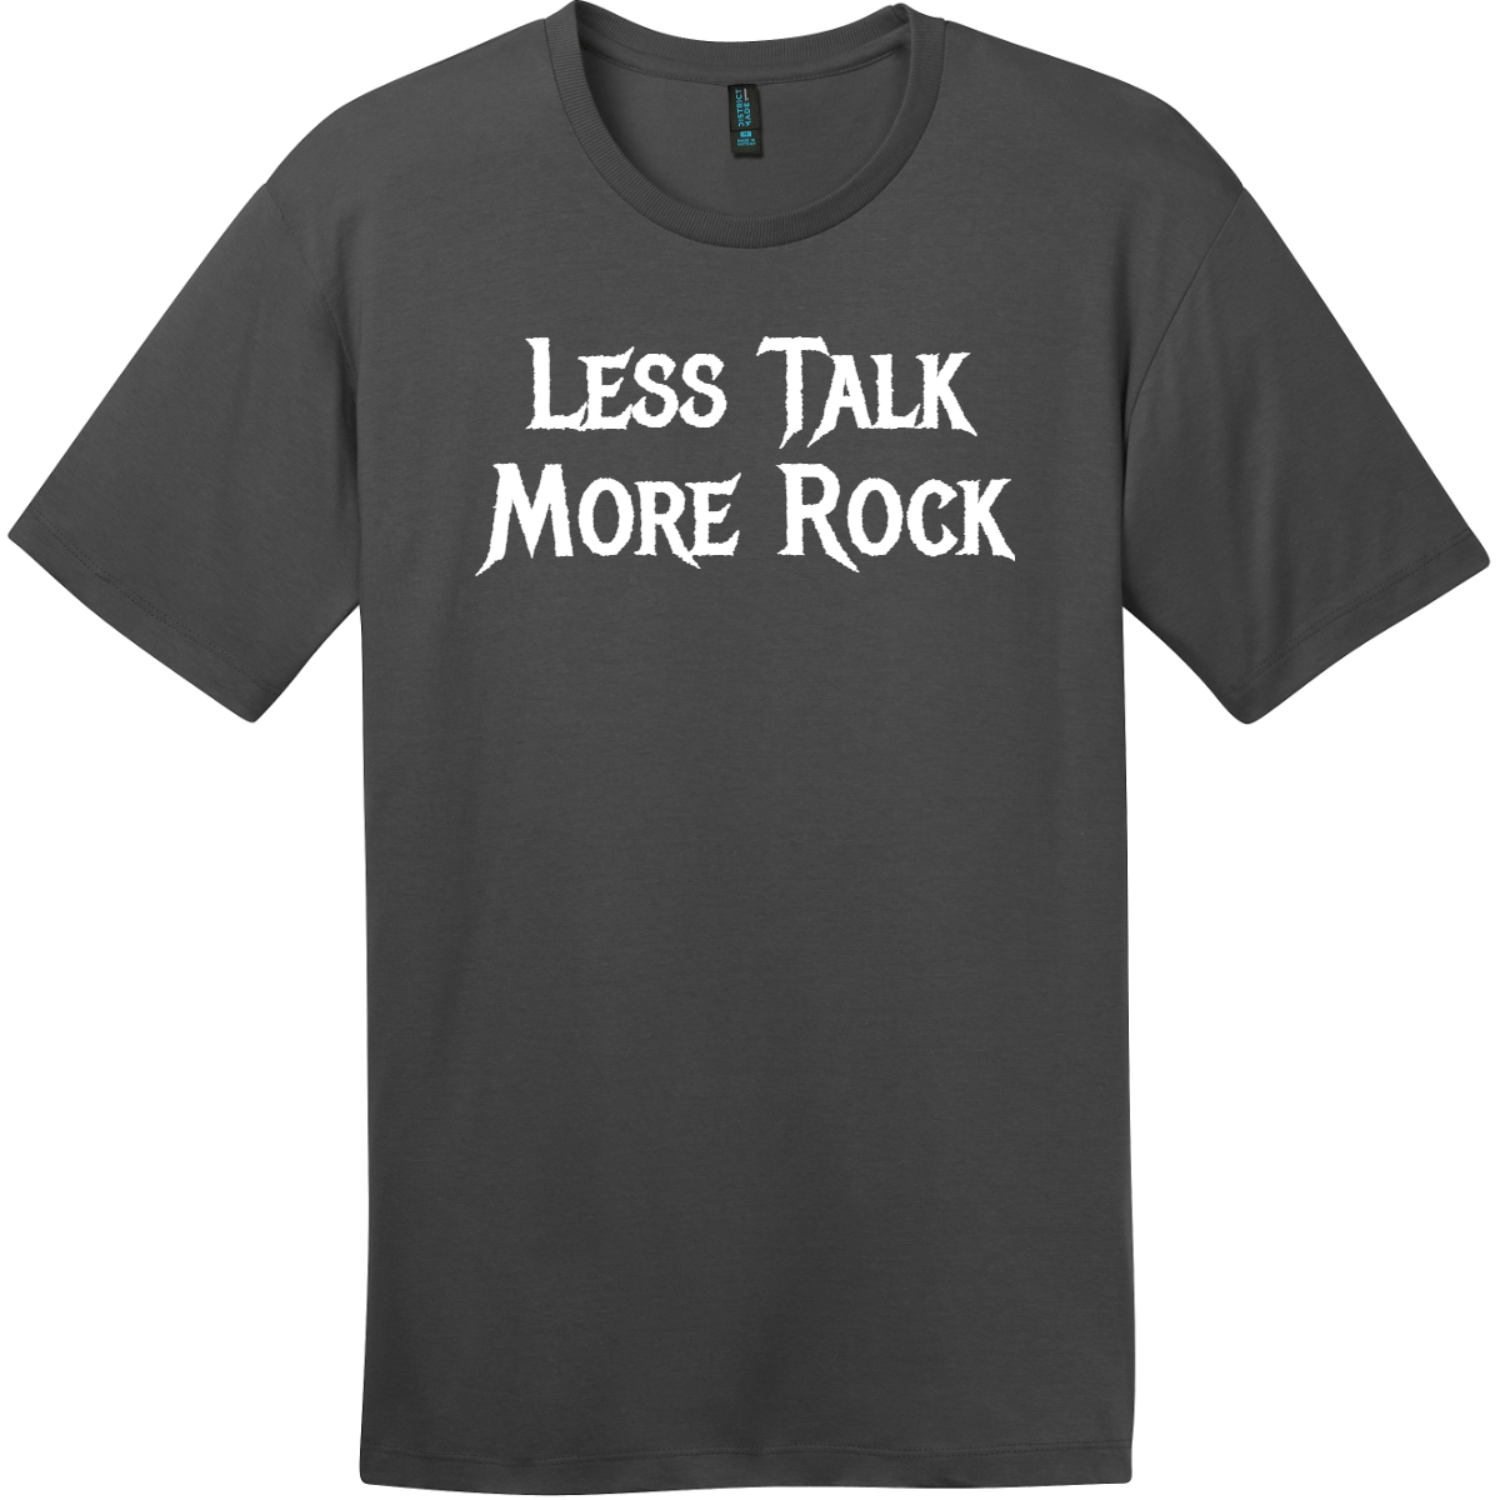 Less Talk More Rock T-Shirt Charcoal District Perfect Weight Tee DT104